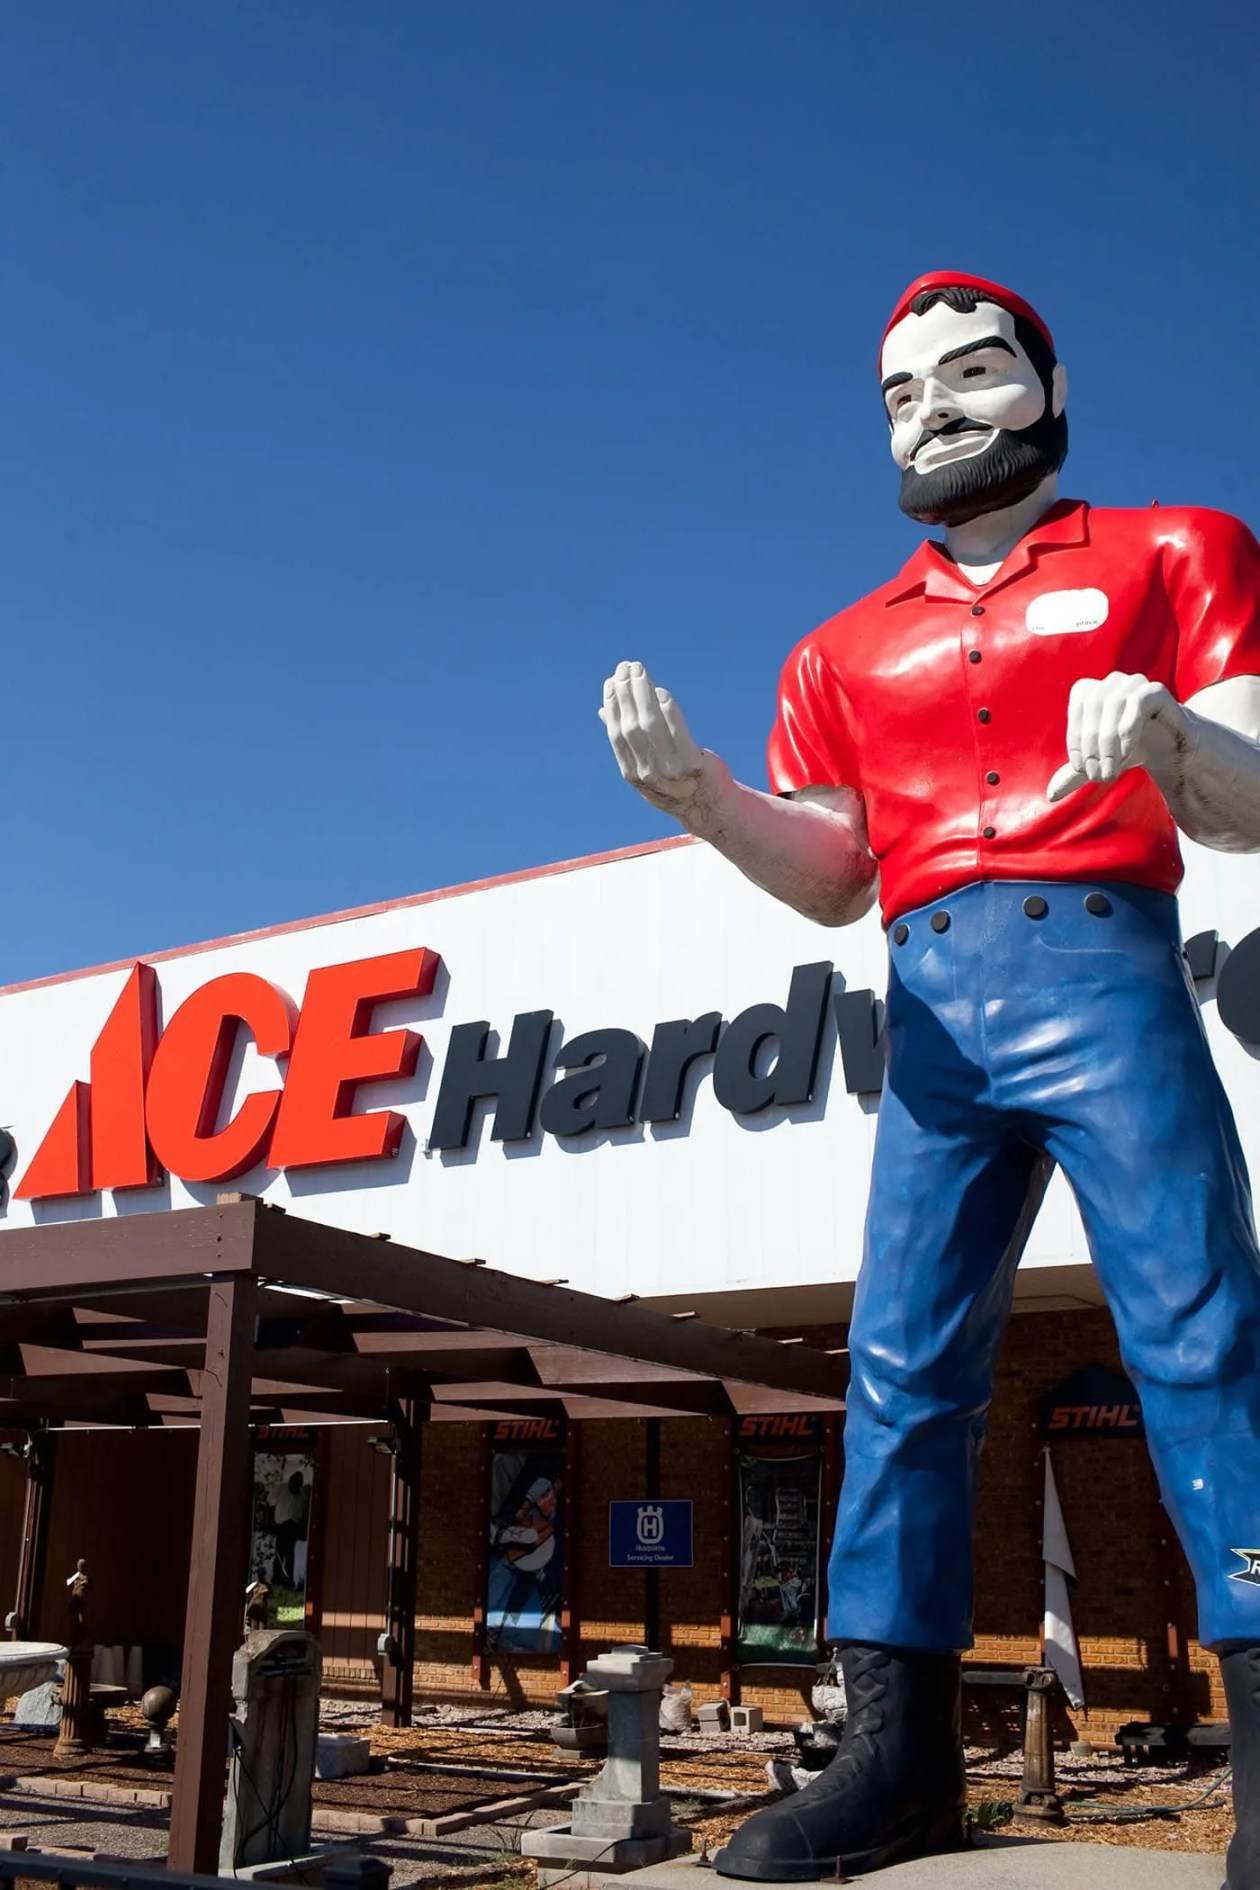 Ace Hardware Muffler Man in Elkhart, Indiana - Indiana Road Trip